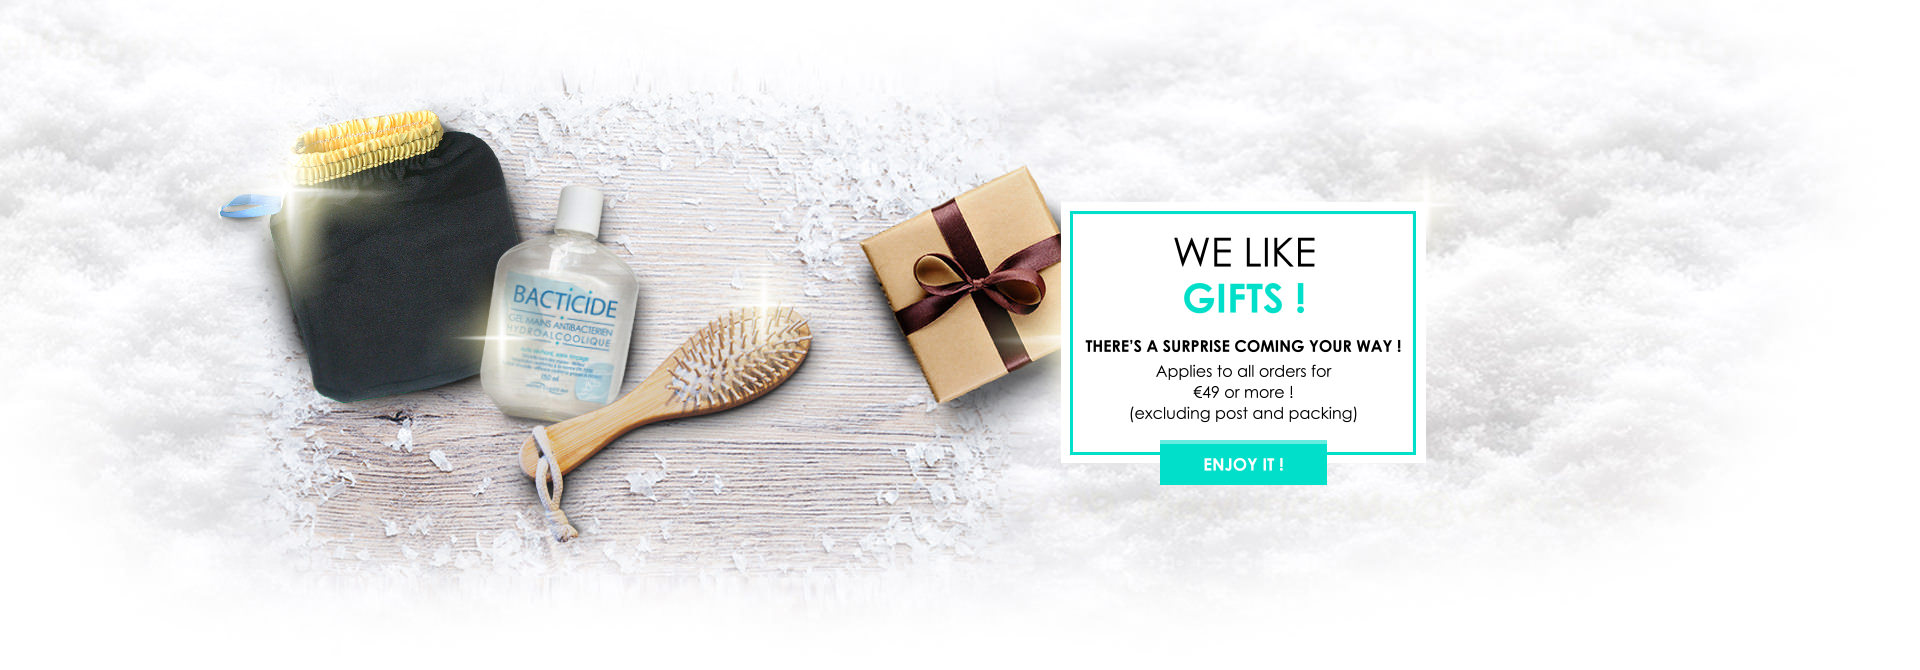 Free gift to all orders for €49 or more ! (excluding post and packing)